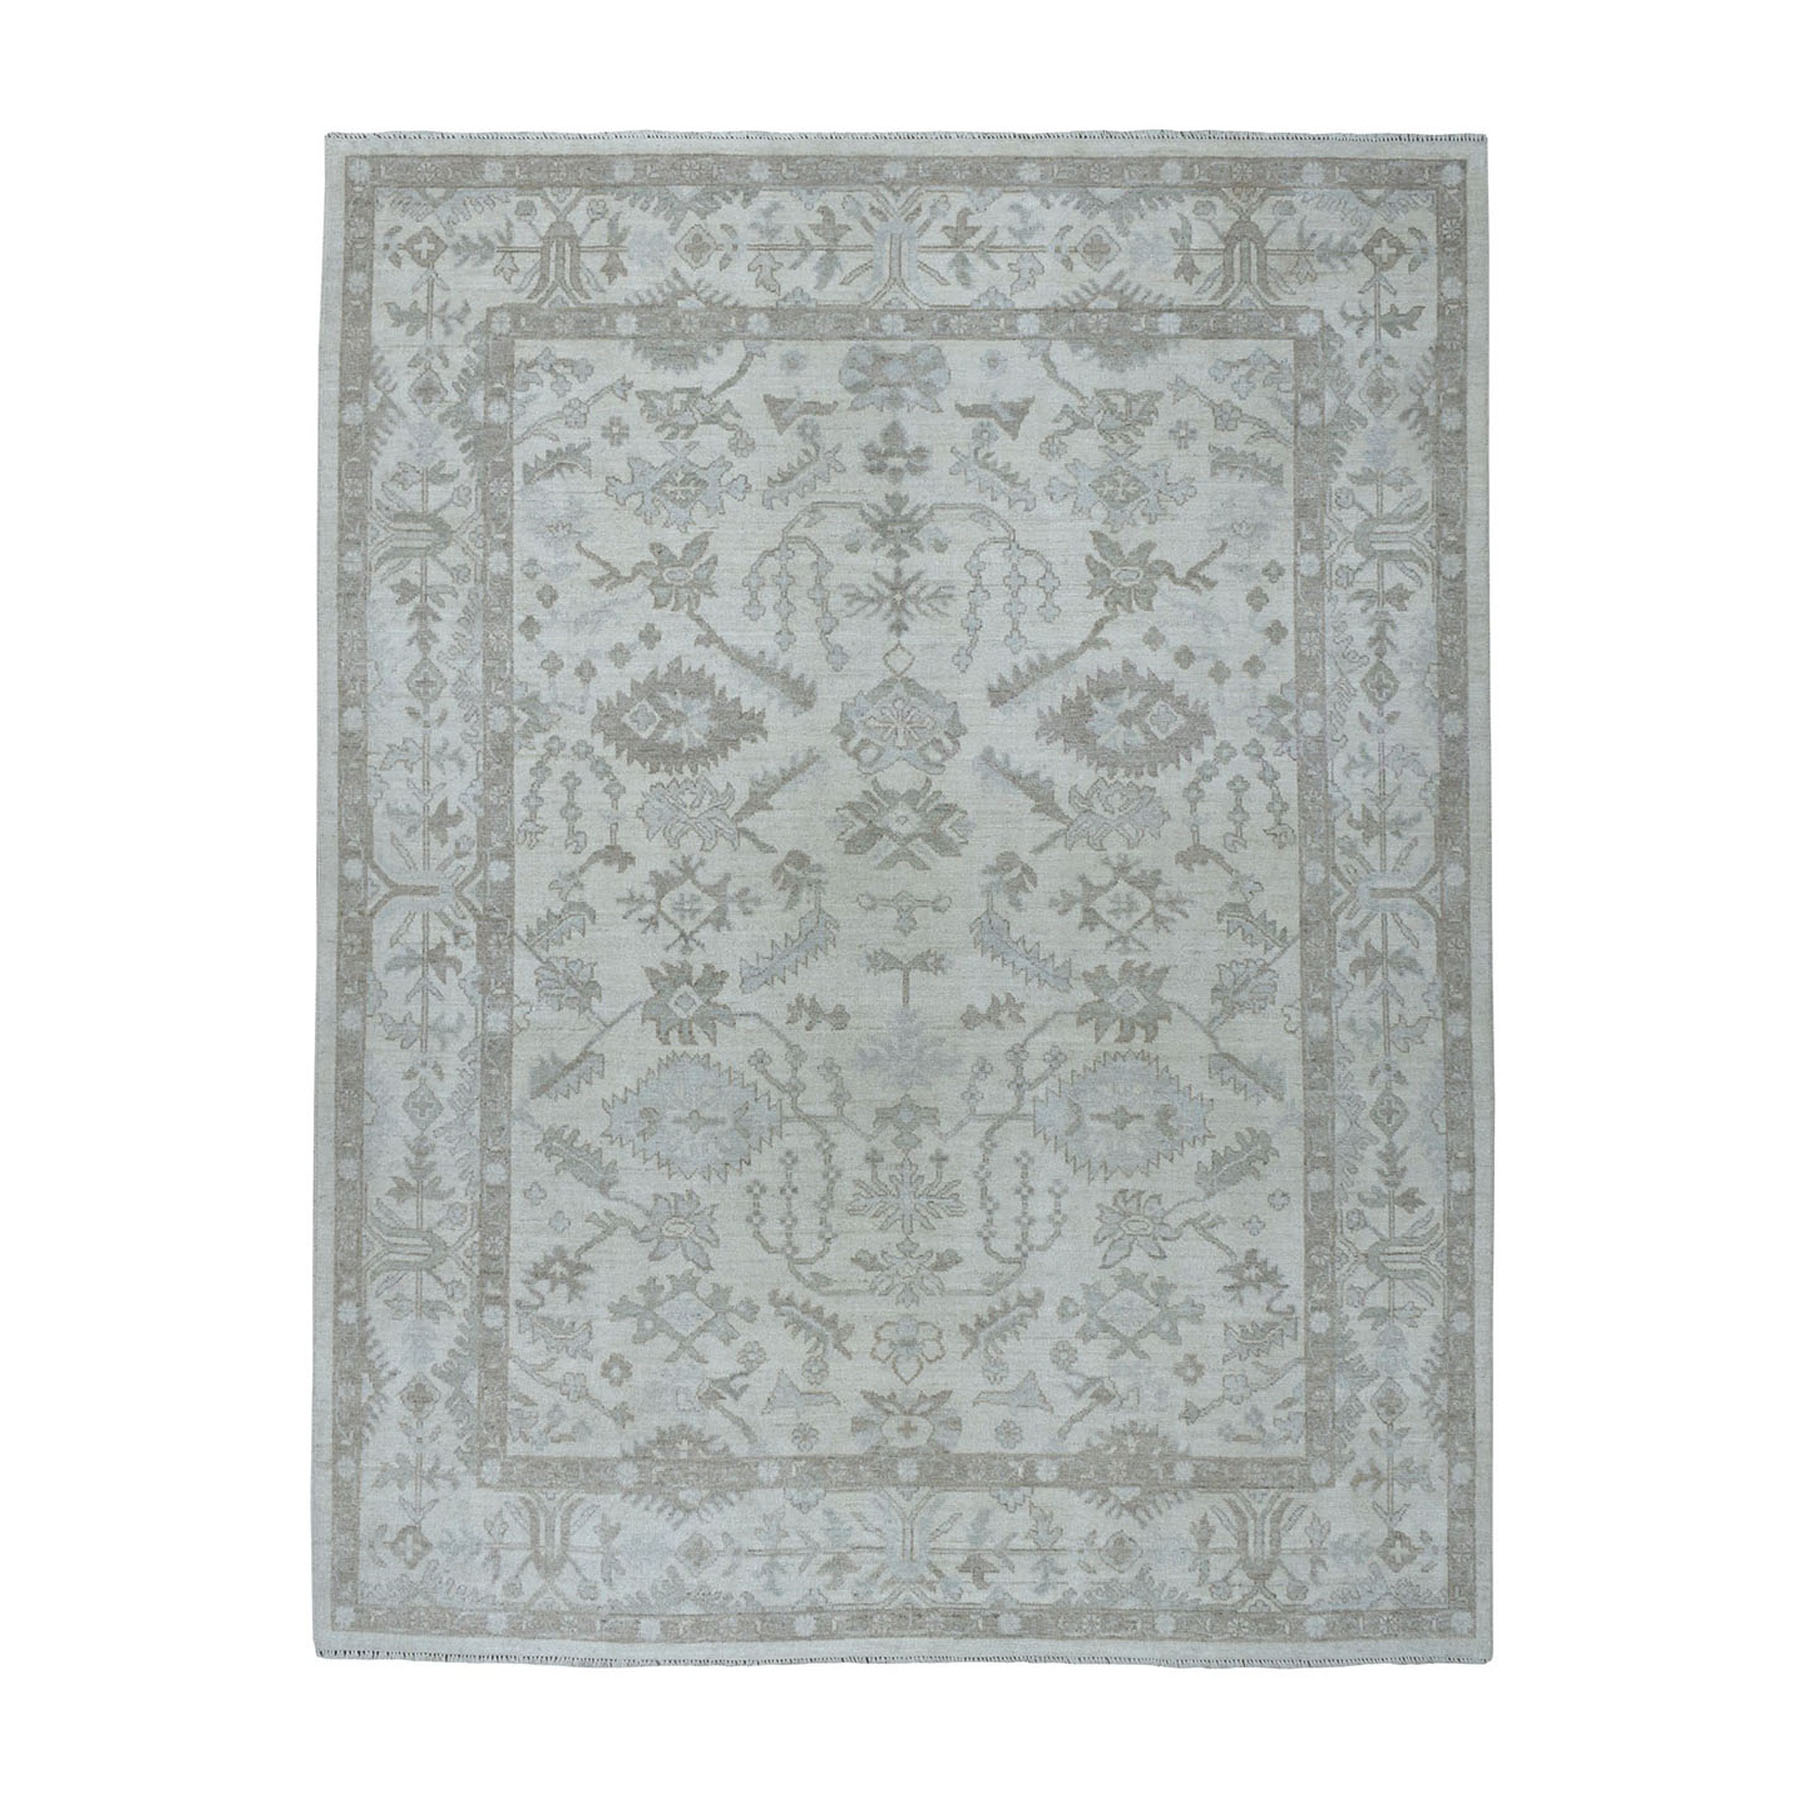 8'X10' Ivory Oushak Textured Pure Wool Hand-Knotted Oriental Rug moae0679